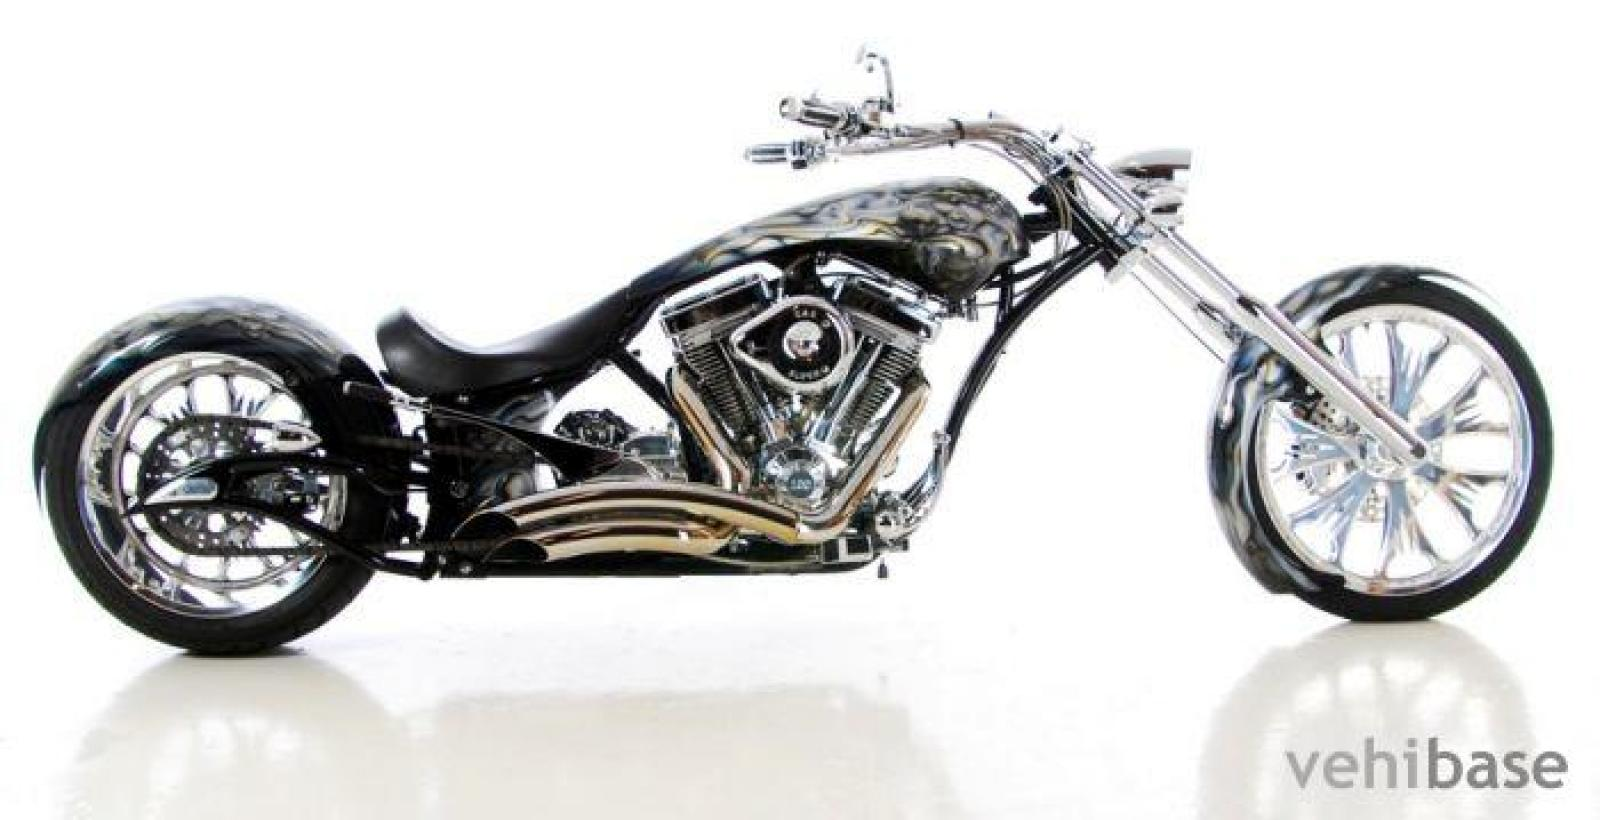 Big Bear Choppers Sled 100 Smooth Carb 2010 images #63623